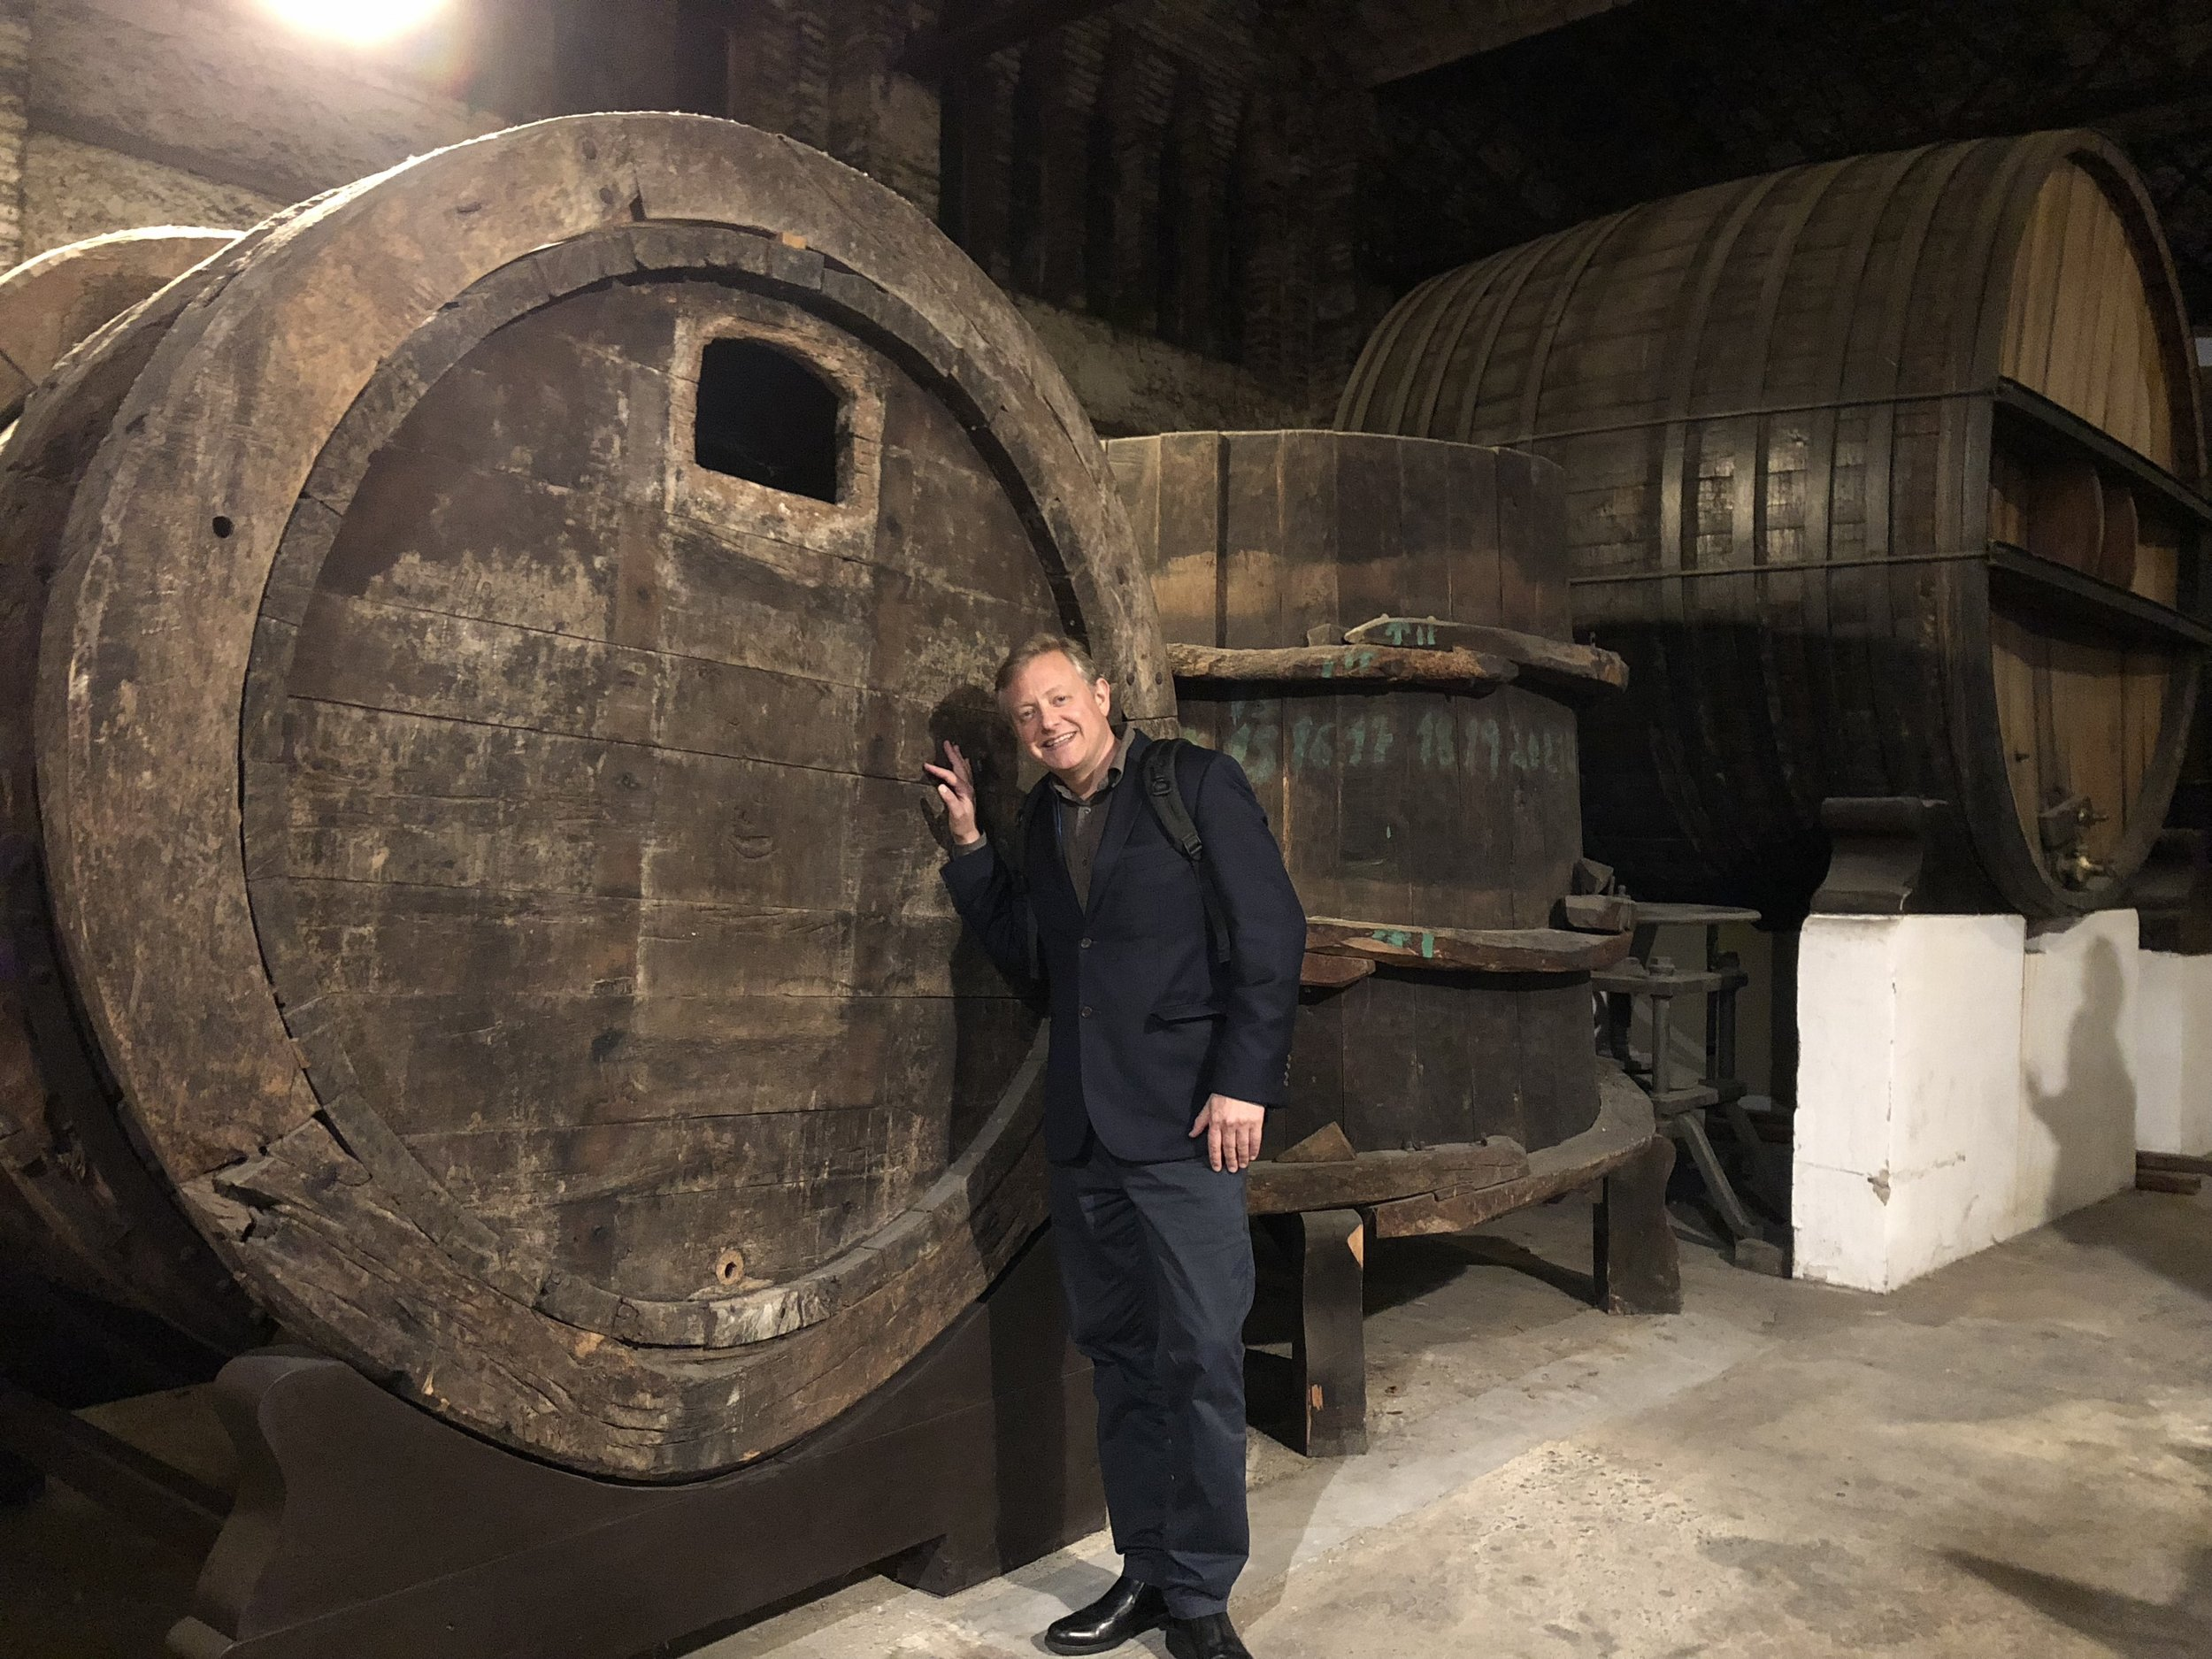 Having barrels of fun at the conference, and feeling slightly dizzy from the combination of fizzy wine and winding rides into the catacombs. Poe would love this journey.